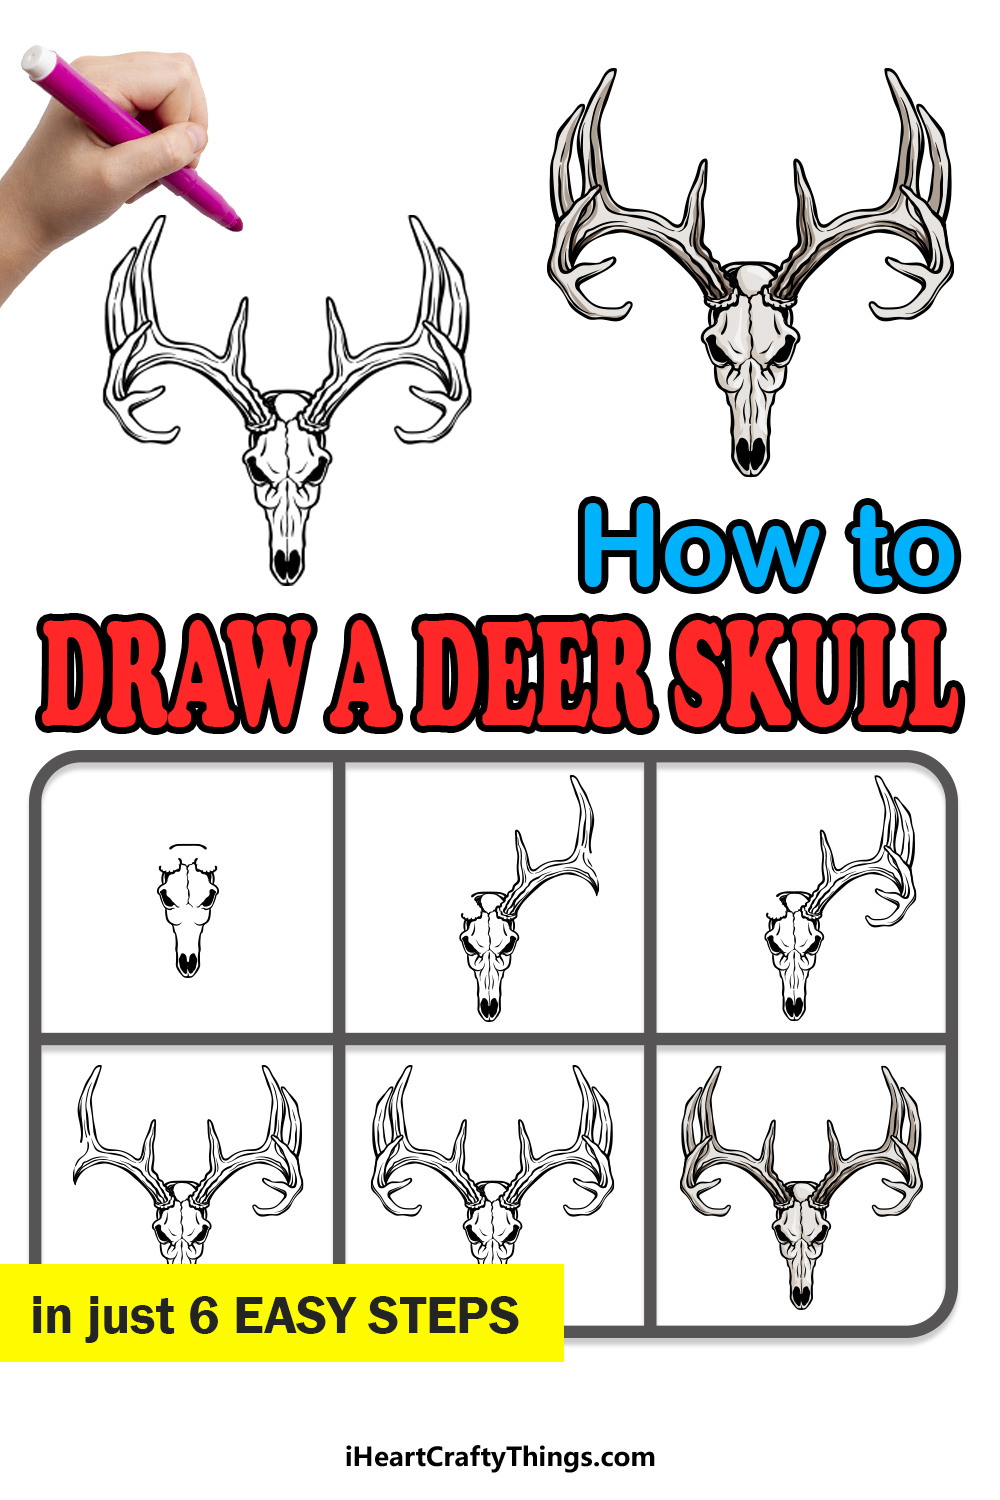 how to draw a deer skull in 6 easy steps